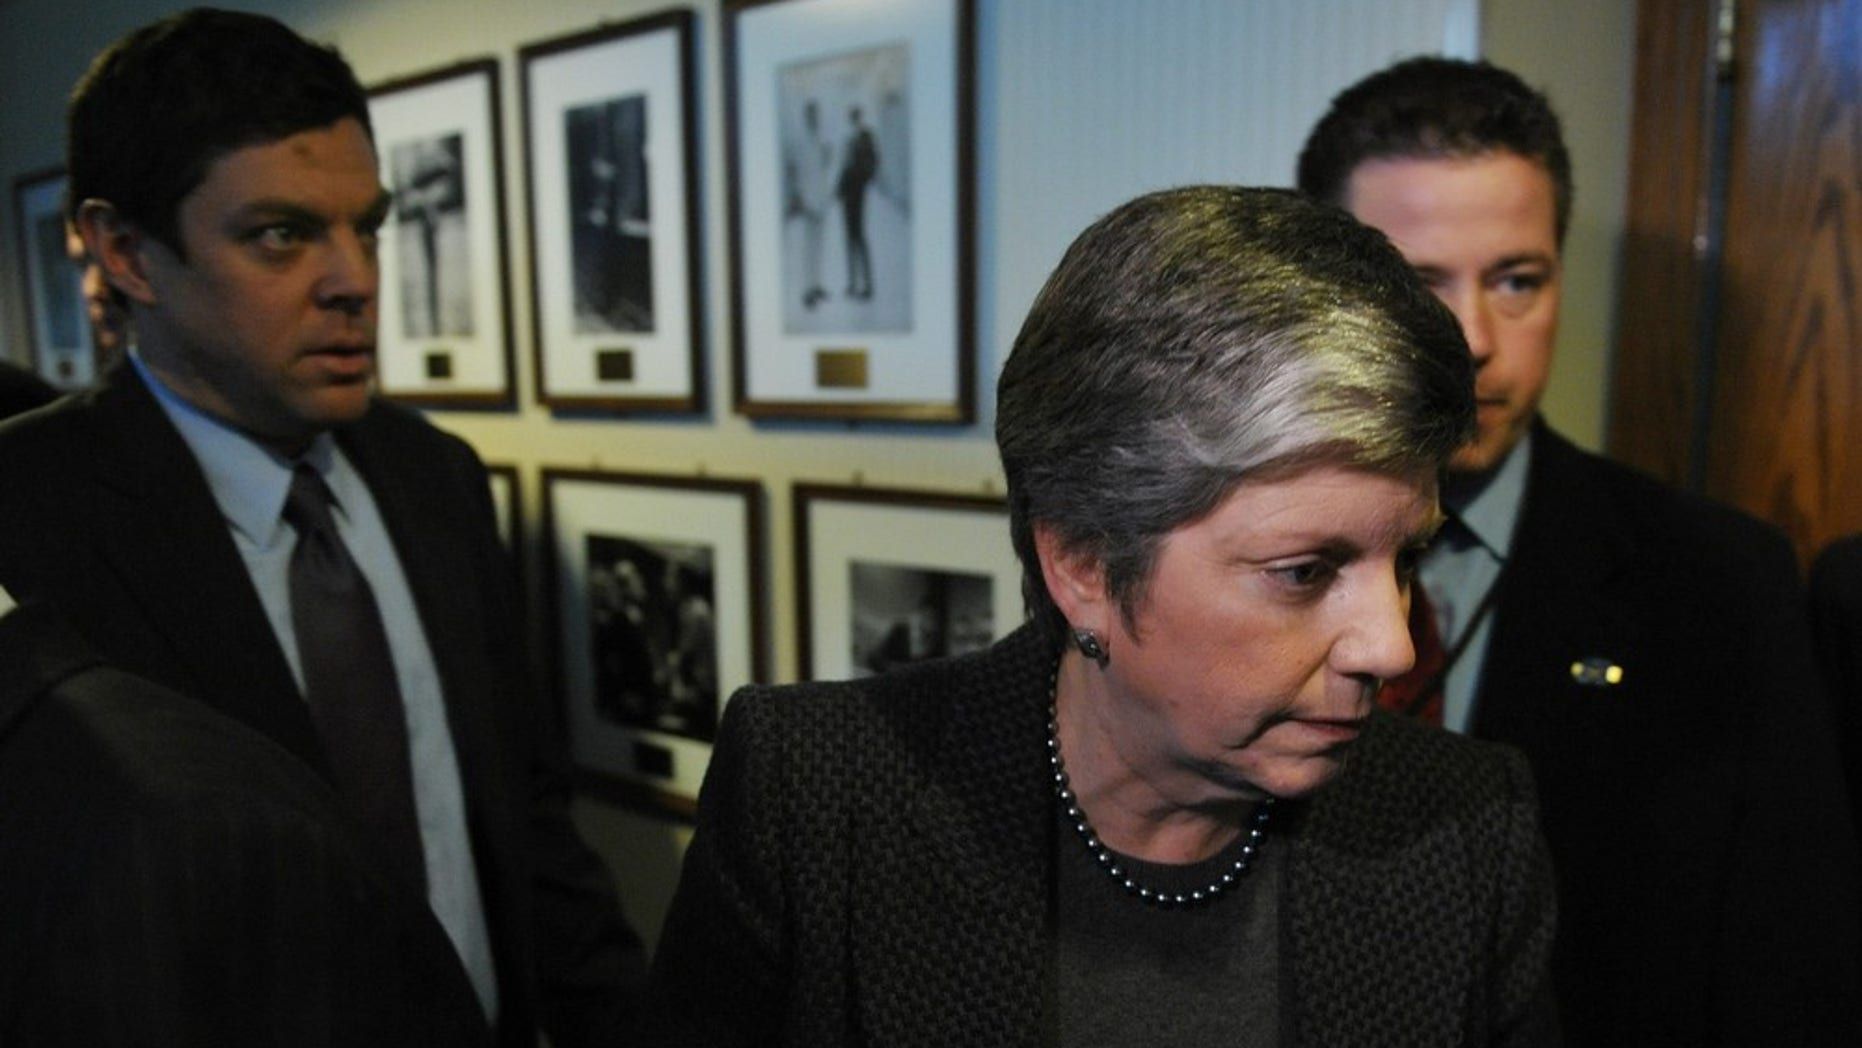 Homeland Security Secretary Janet Napolitano says pat-downs and body scanners are important security measures